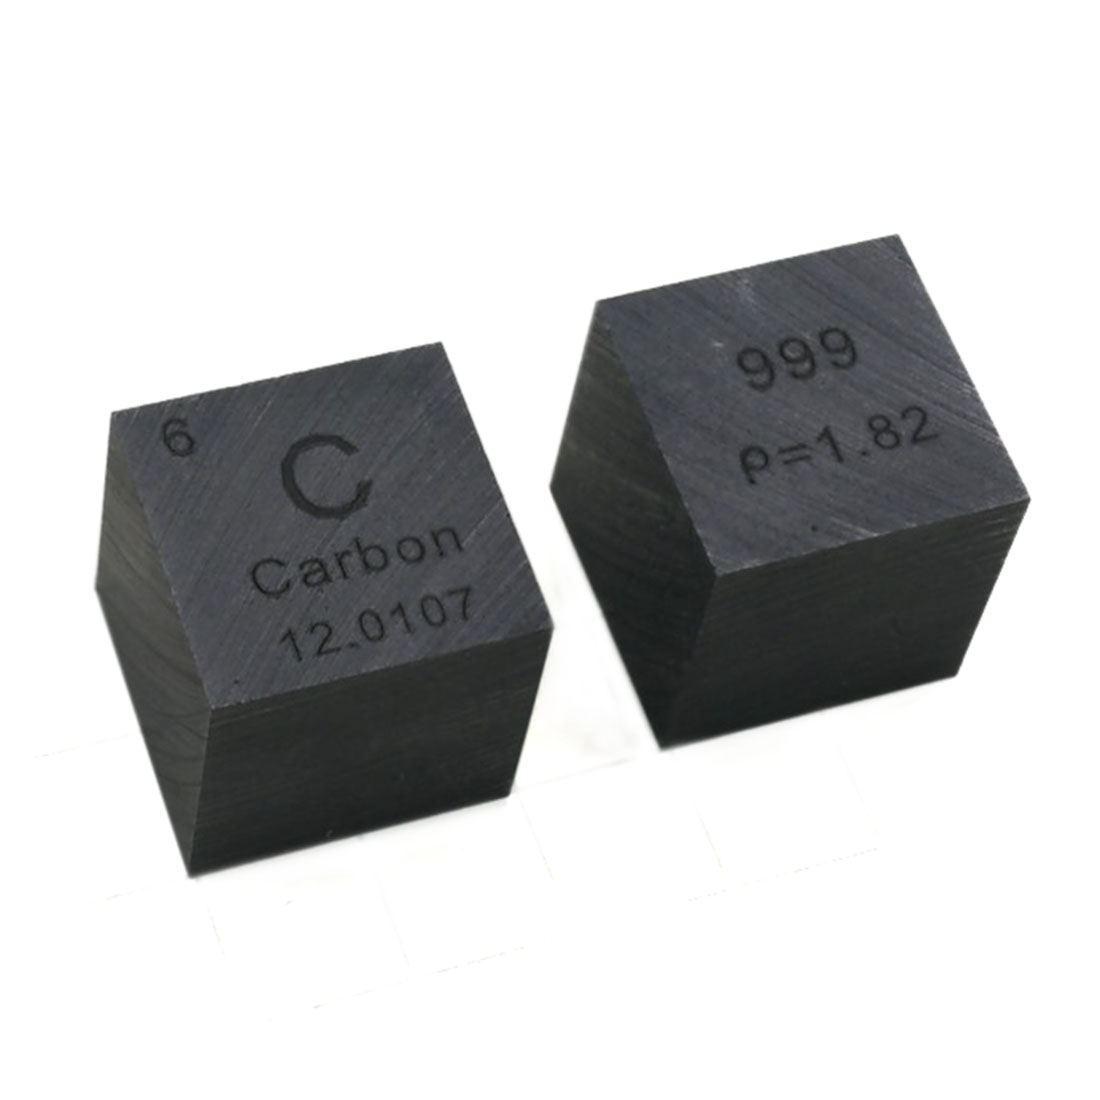 High Purity 10 X 10 X 10mm Wiredrawing Carbon Cube Periodic Table Of Elements Cube For Research Lab Collection(C≥99.9%)